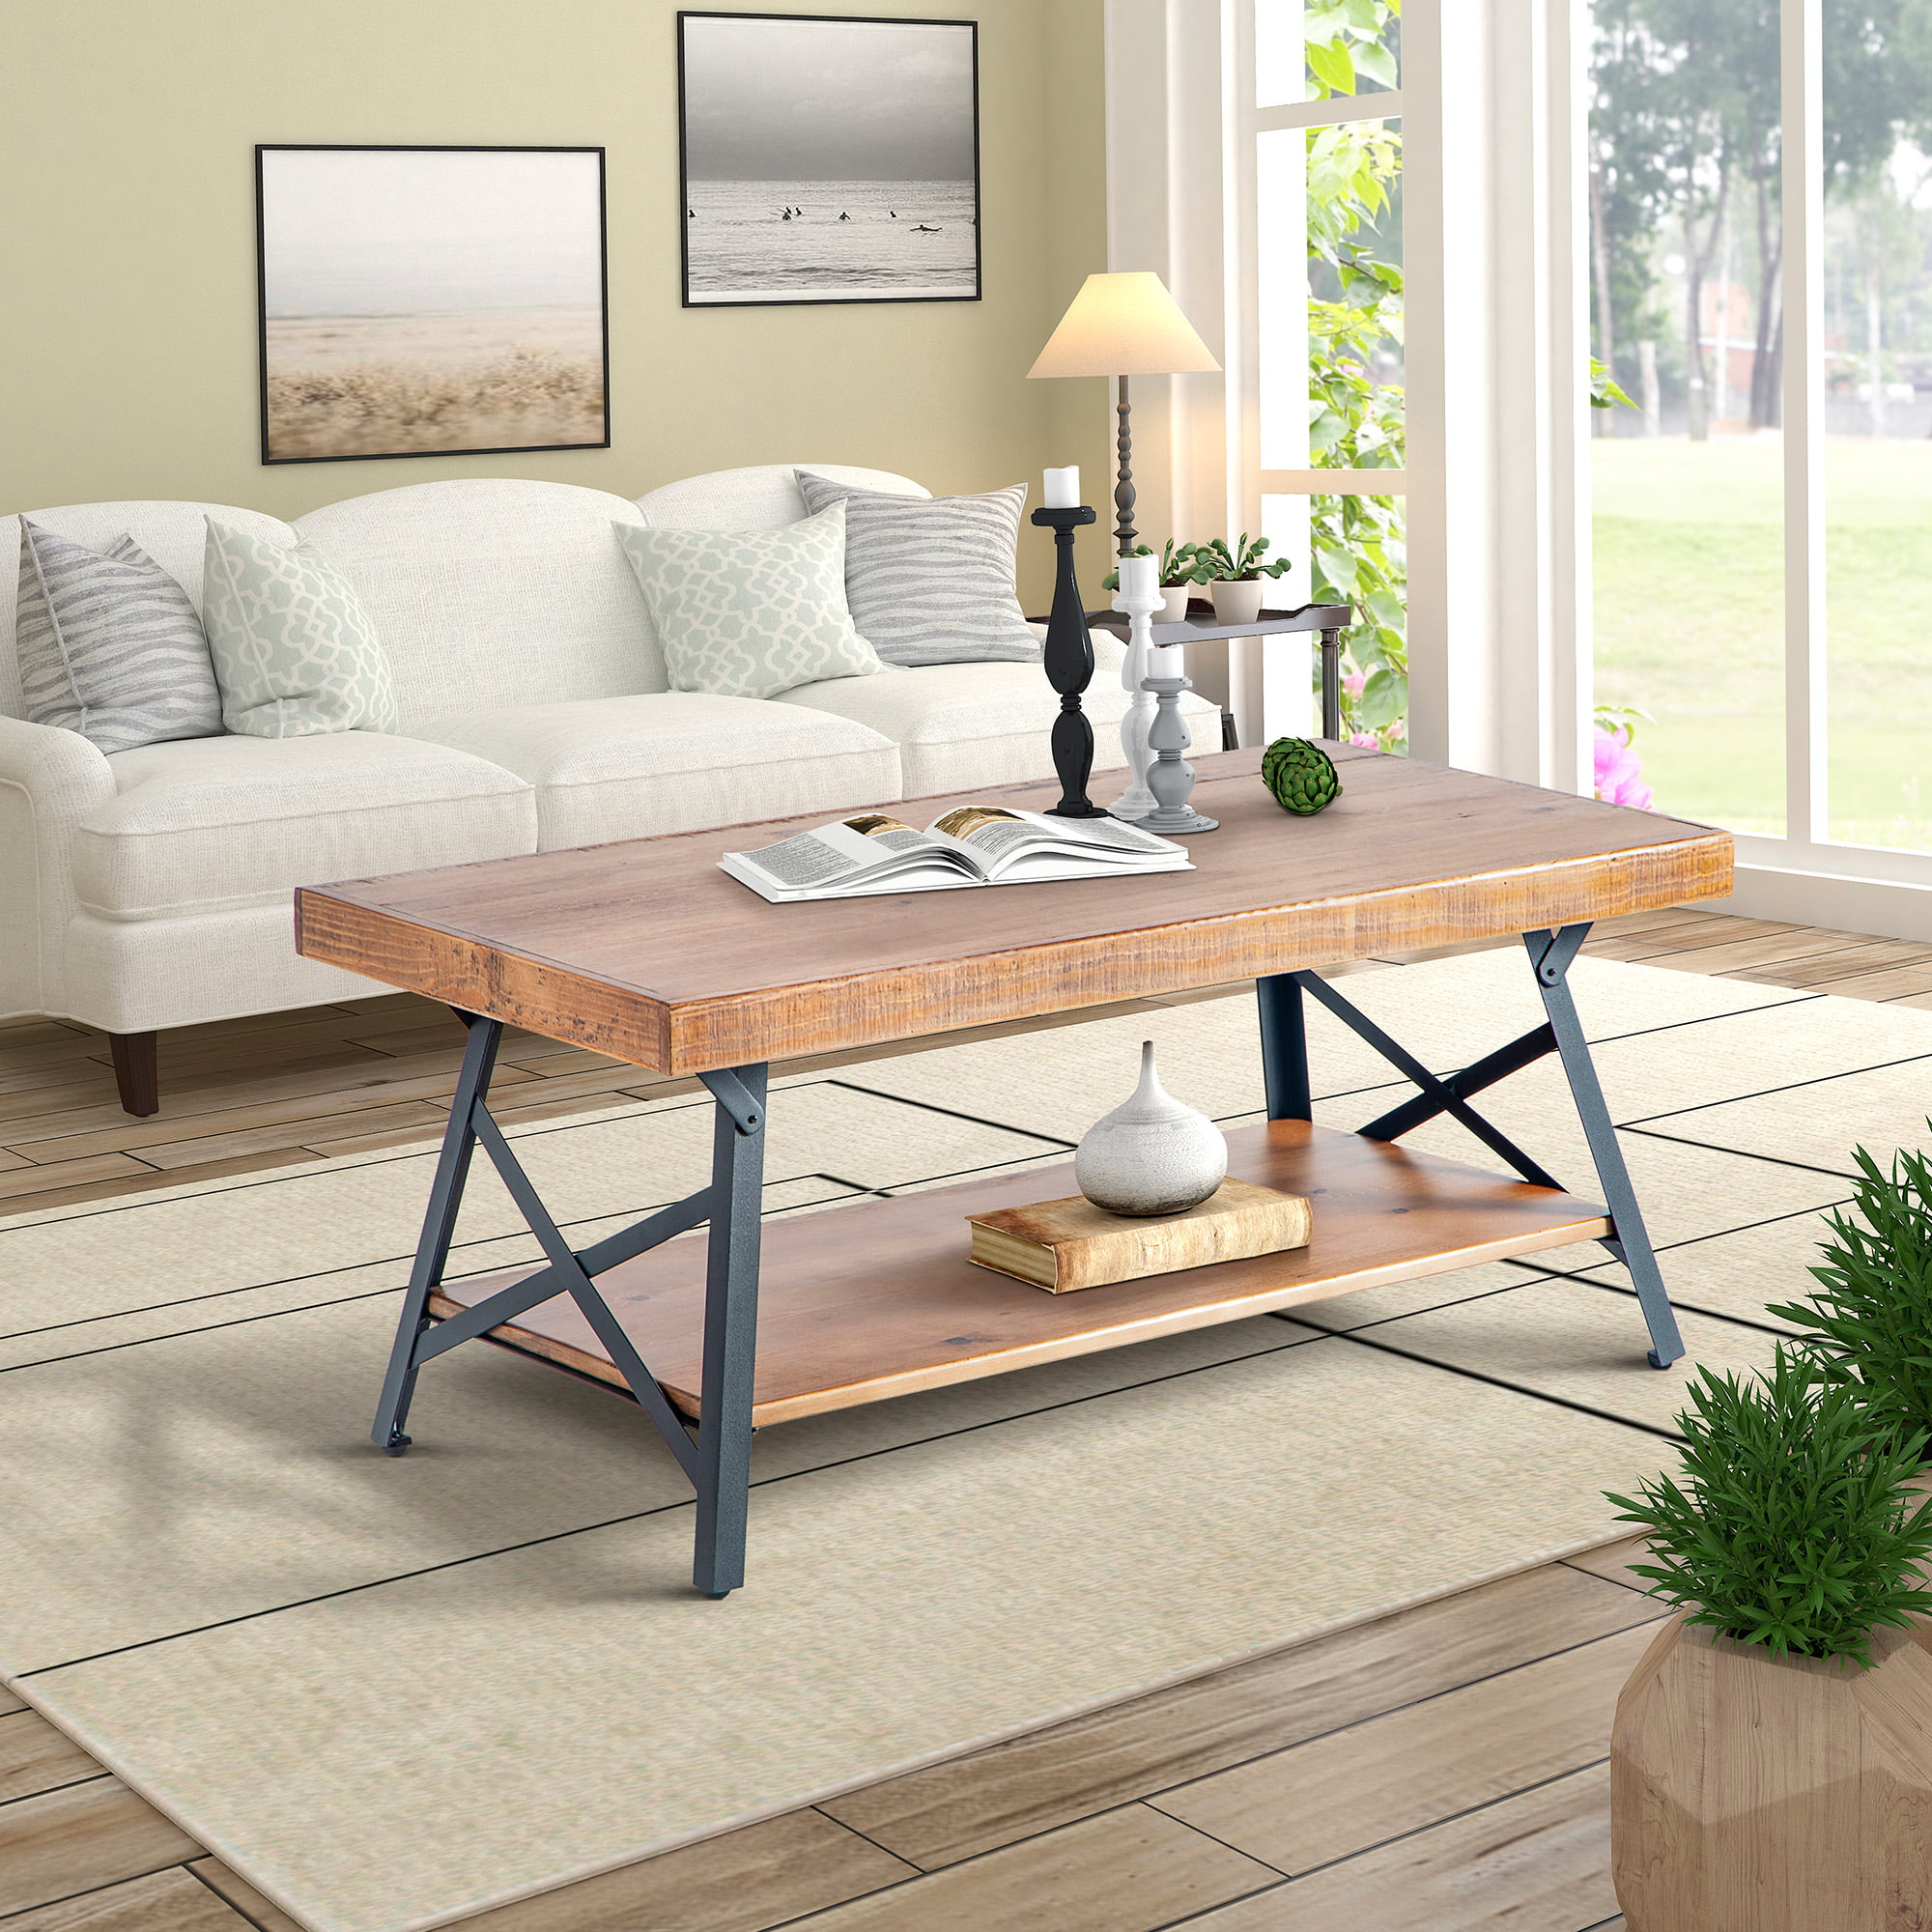 Exceptionnel Harperu0026Bright Designs Solid Wood Coffee Table With Metal Legs For Living  Room